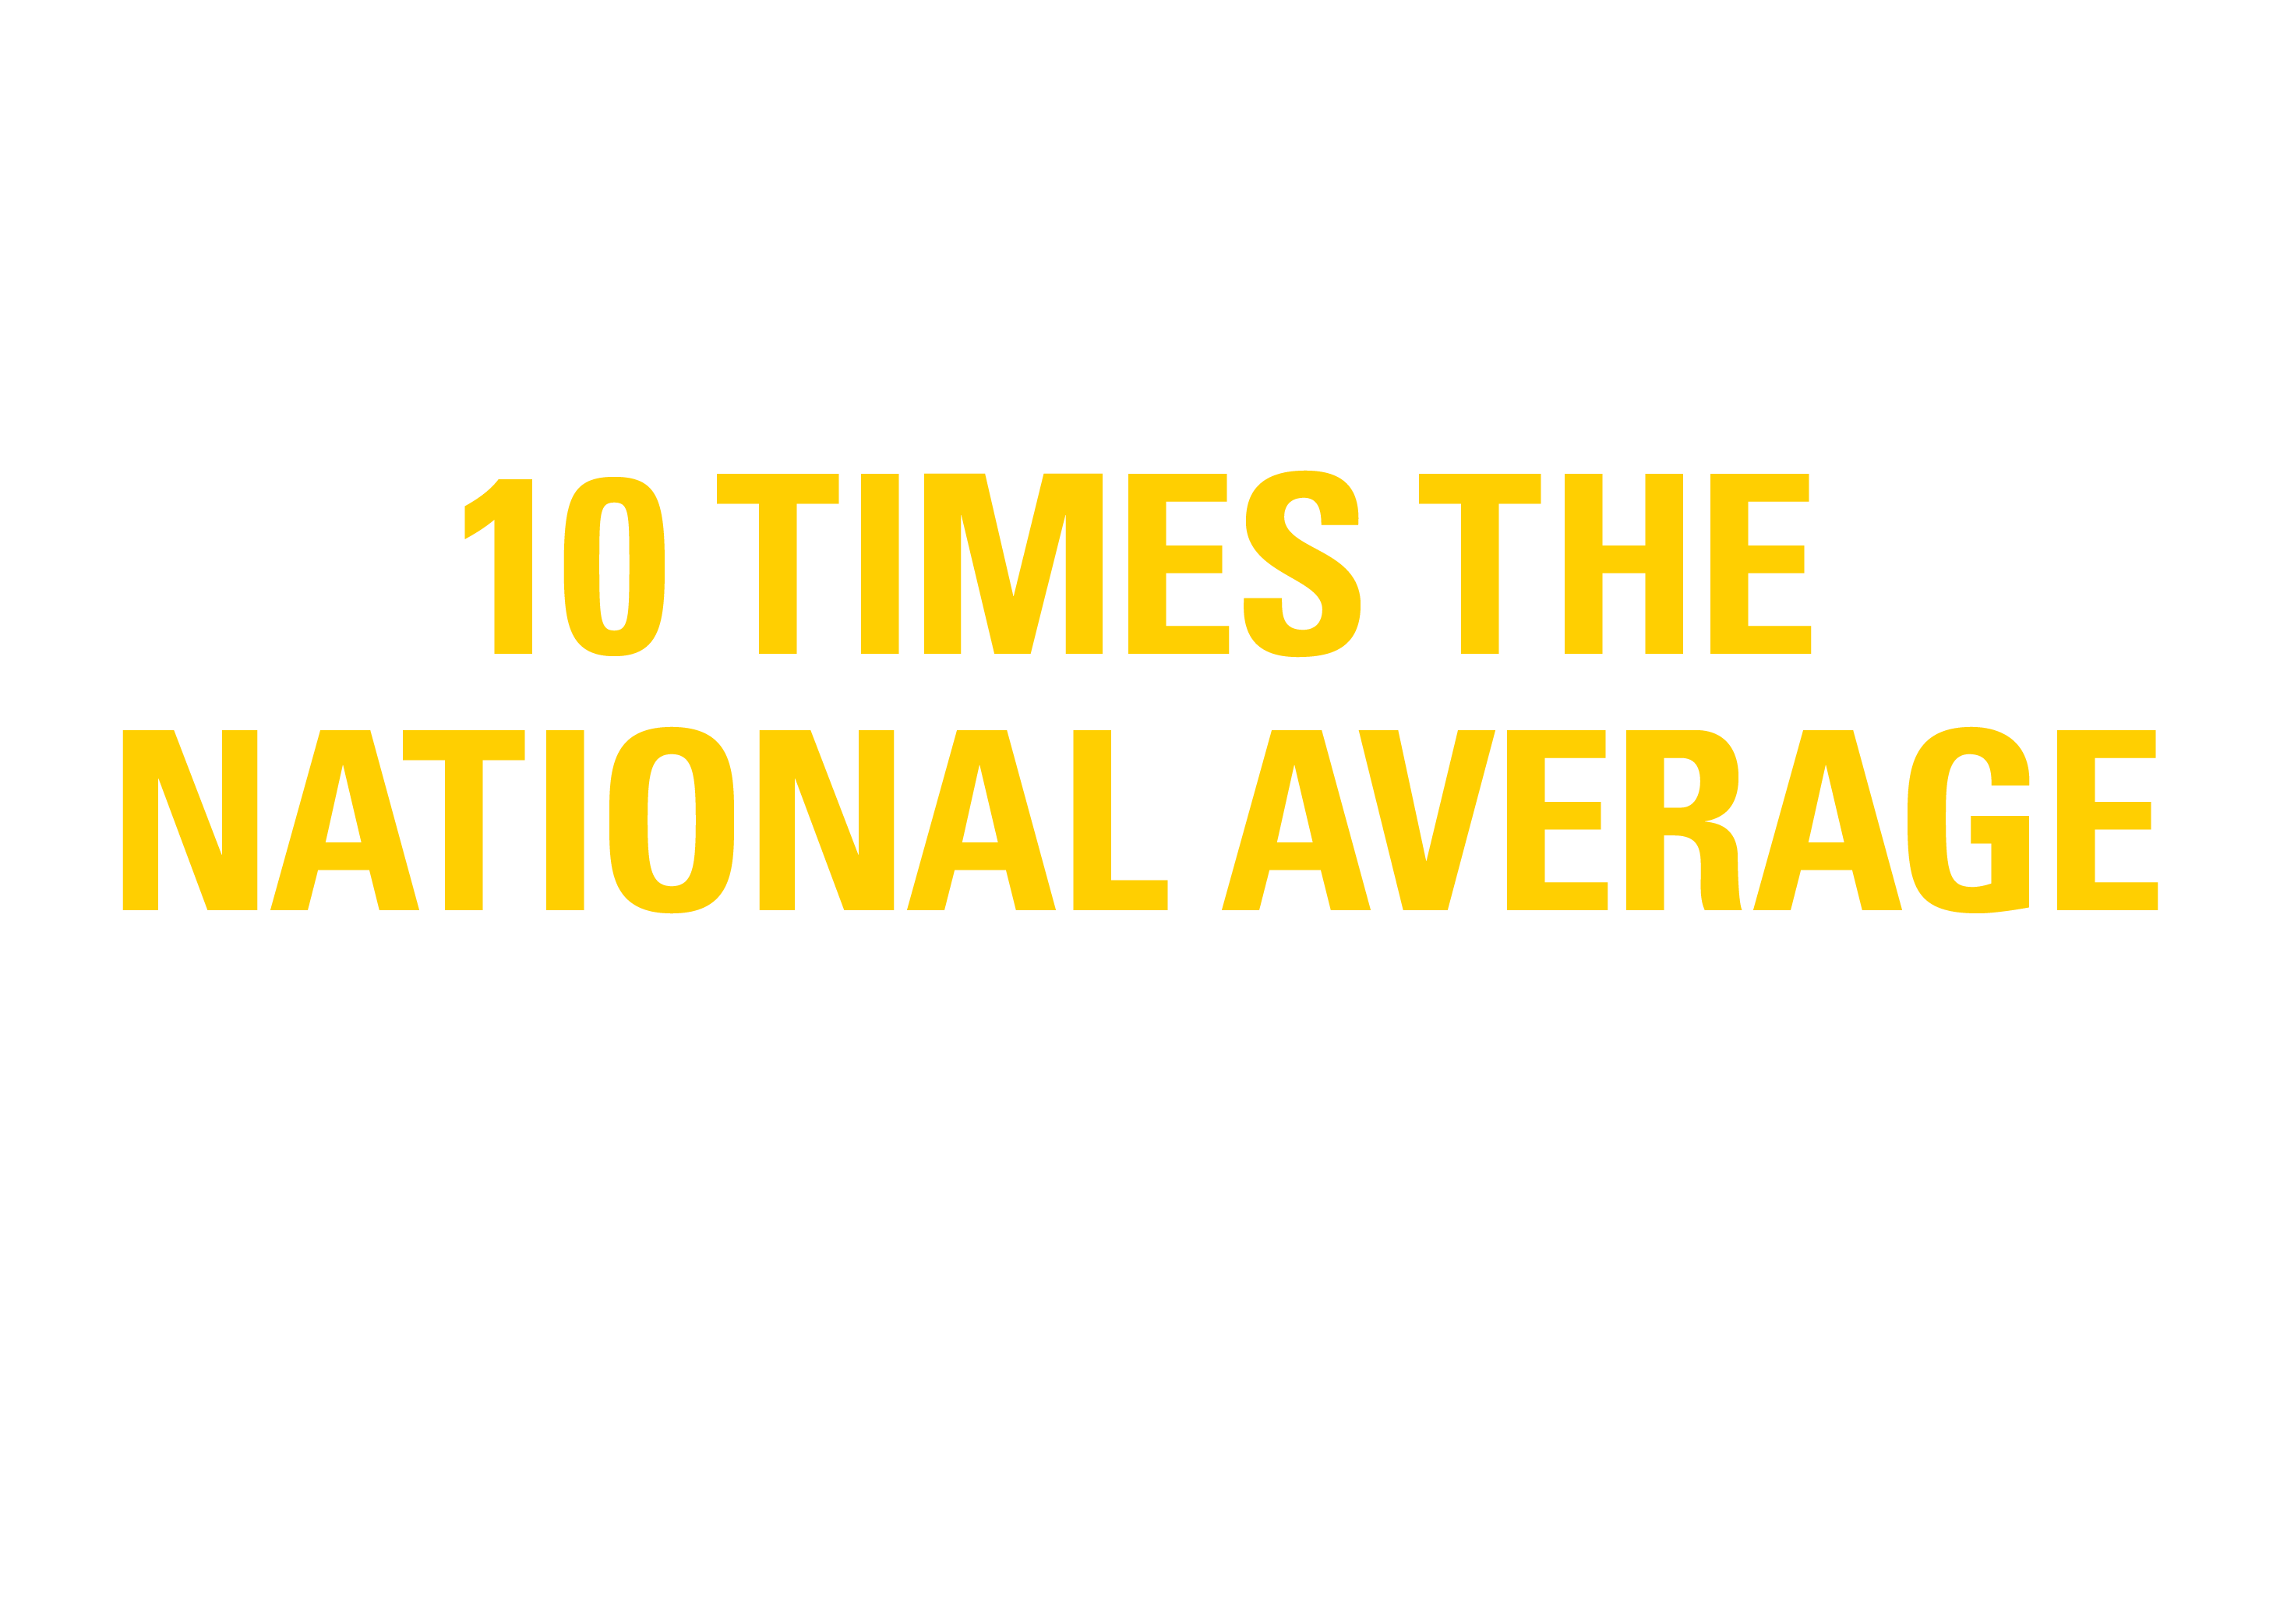 DDS Program has 10 Times the National Average of Graduates Working in Community Dental Centers